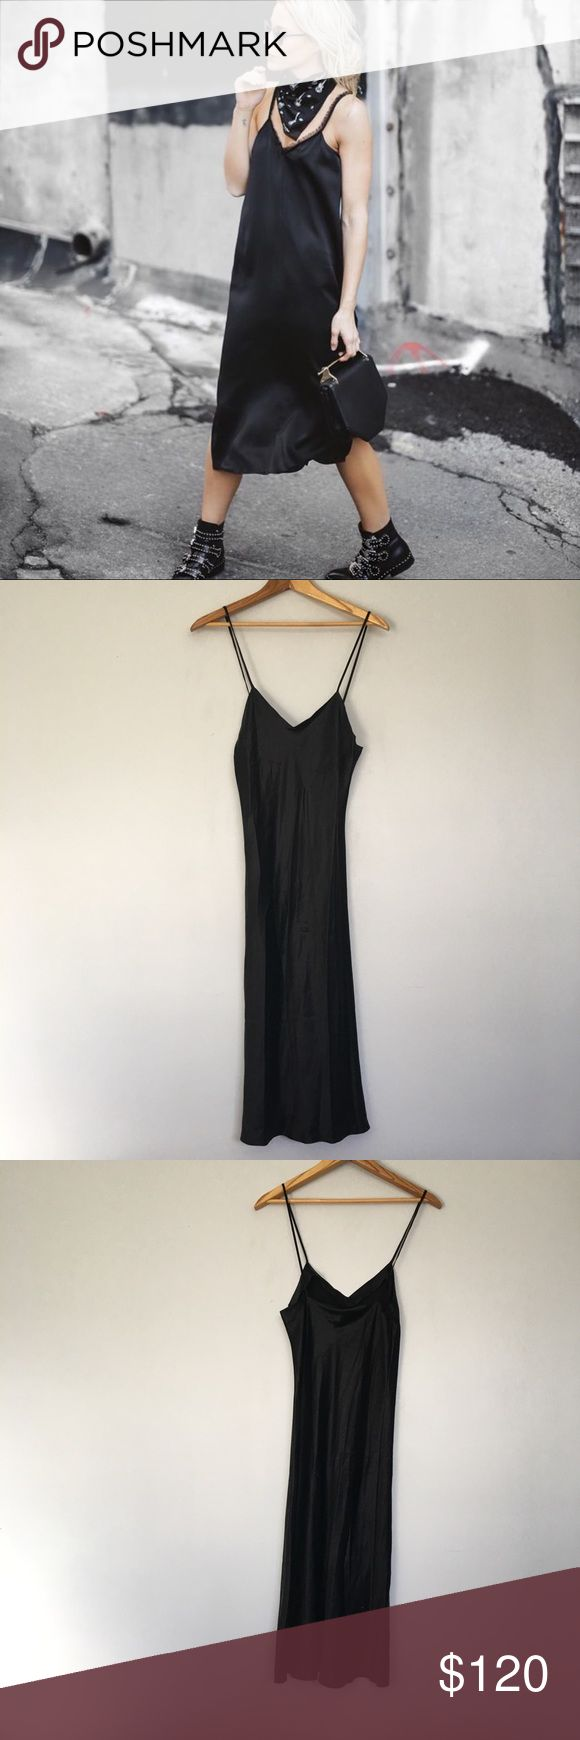 100% Silk Black Vintage Long Slip Dress SZ S 100% Silk Black Vintage Slip Dress SZ S. Perfect dress. Reminds me of something you would find at Reformation. First picture and last three are not actual item but for styling inspiration purposes only. lasoie Dresses Maxi